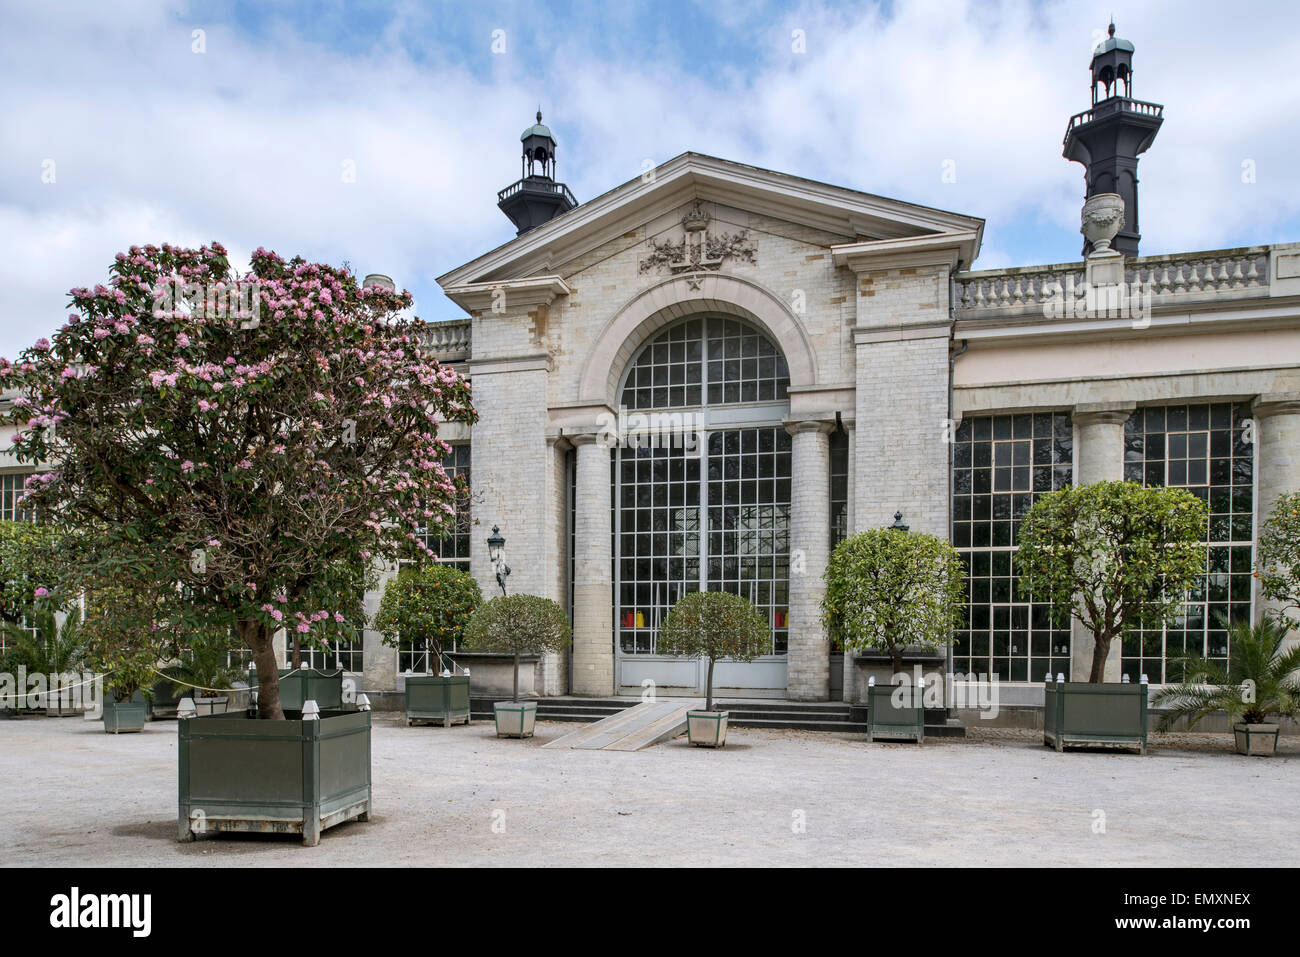 Entrance to the Orangerie at the Royal Greenhouses of Laeken in the park of the Royal Palace of Laken, Brussels, - Stock Image